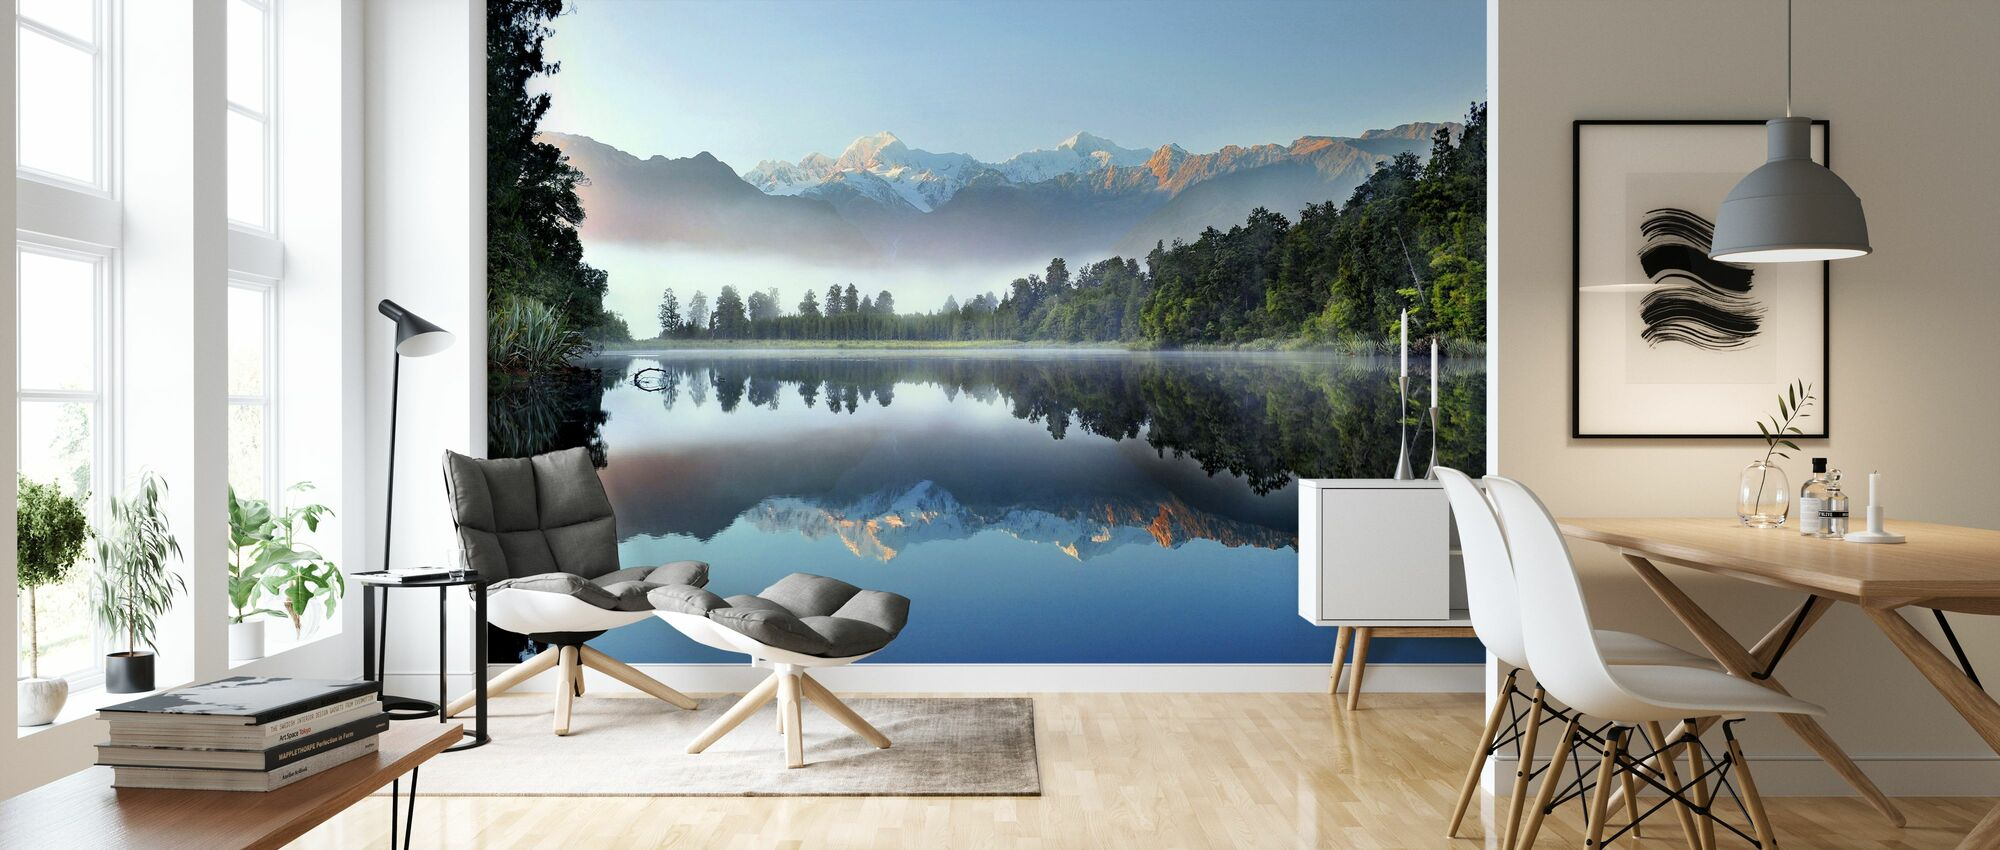 Reflection of Lake Matheson - Wallpaper - Living Room